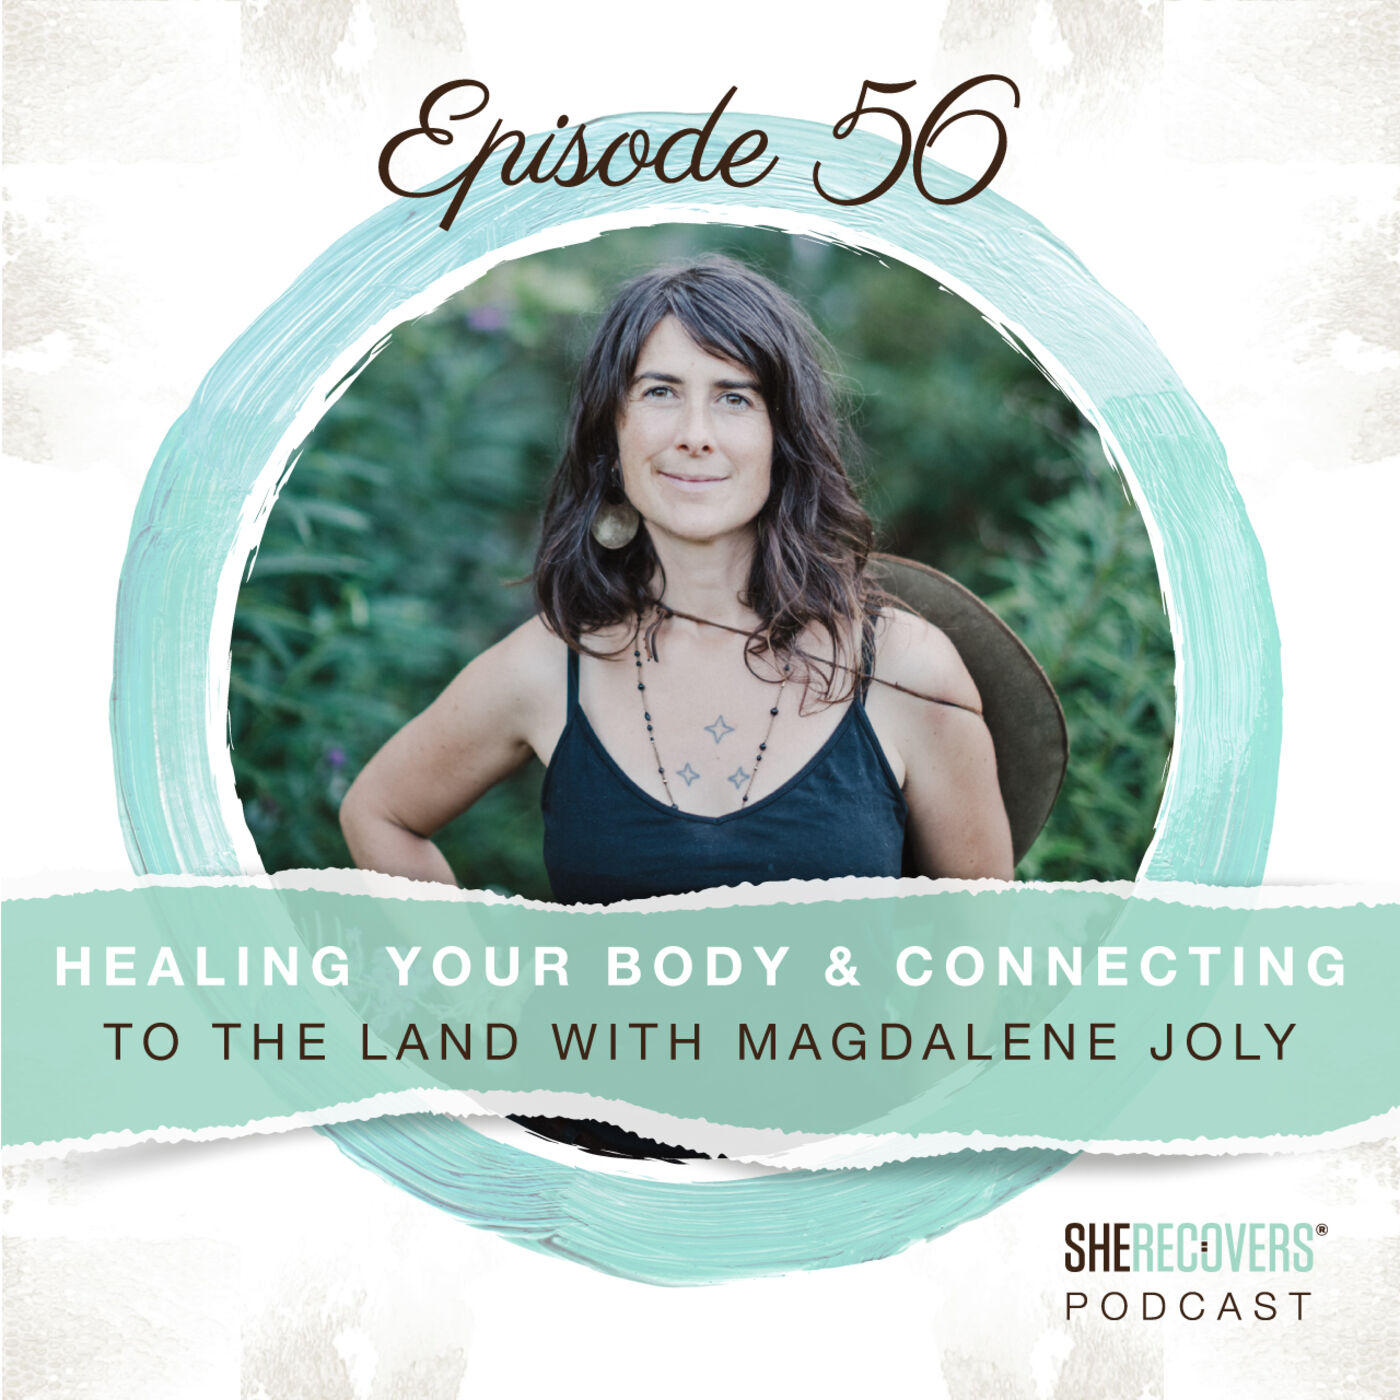 Episode 56: Healing Your Body & Connecting to the Land with Magdalene Joly